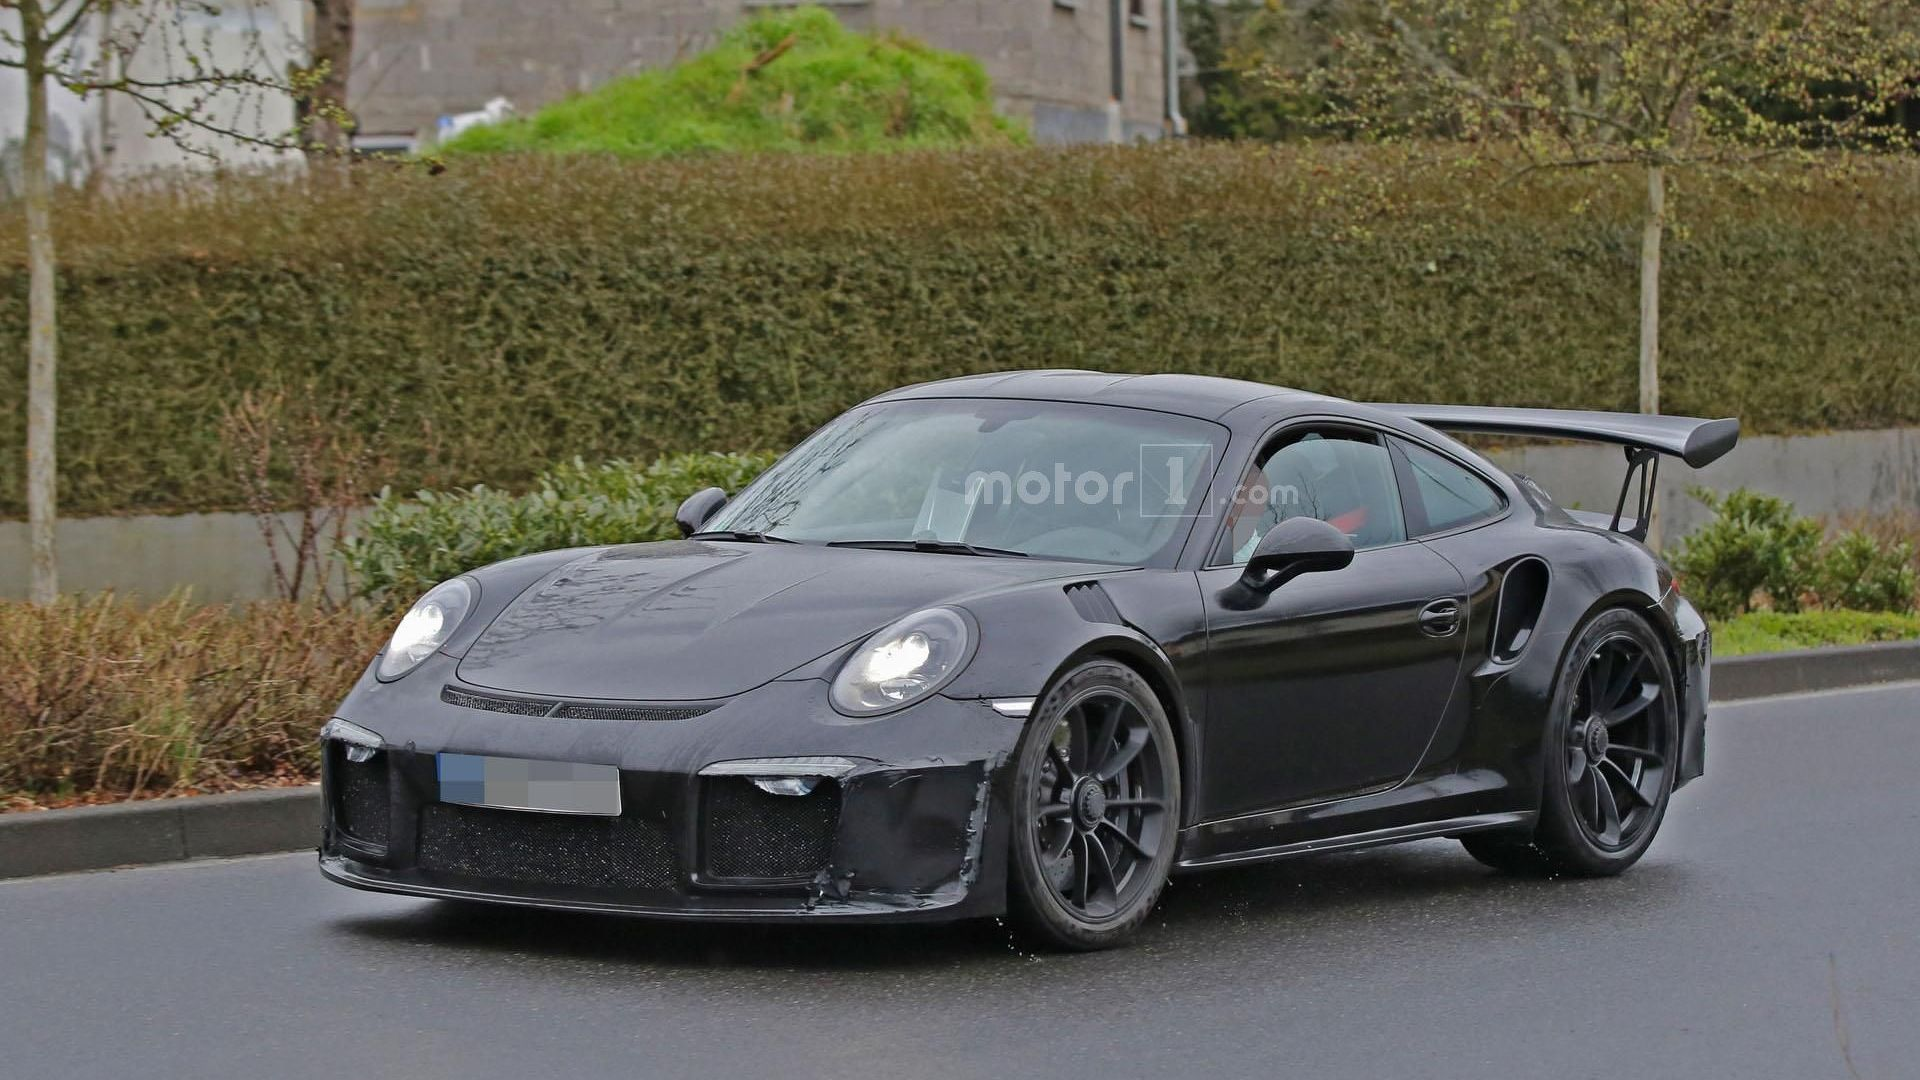 Porsche 911 GT3 RS 4.2 spied for the first time